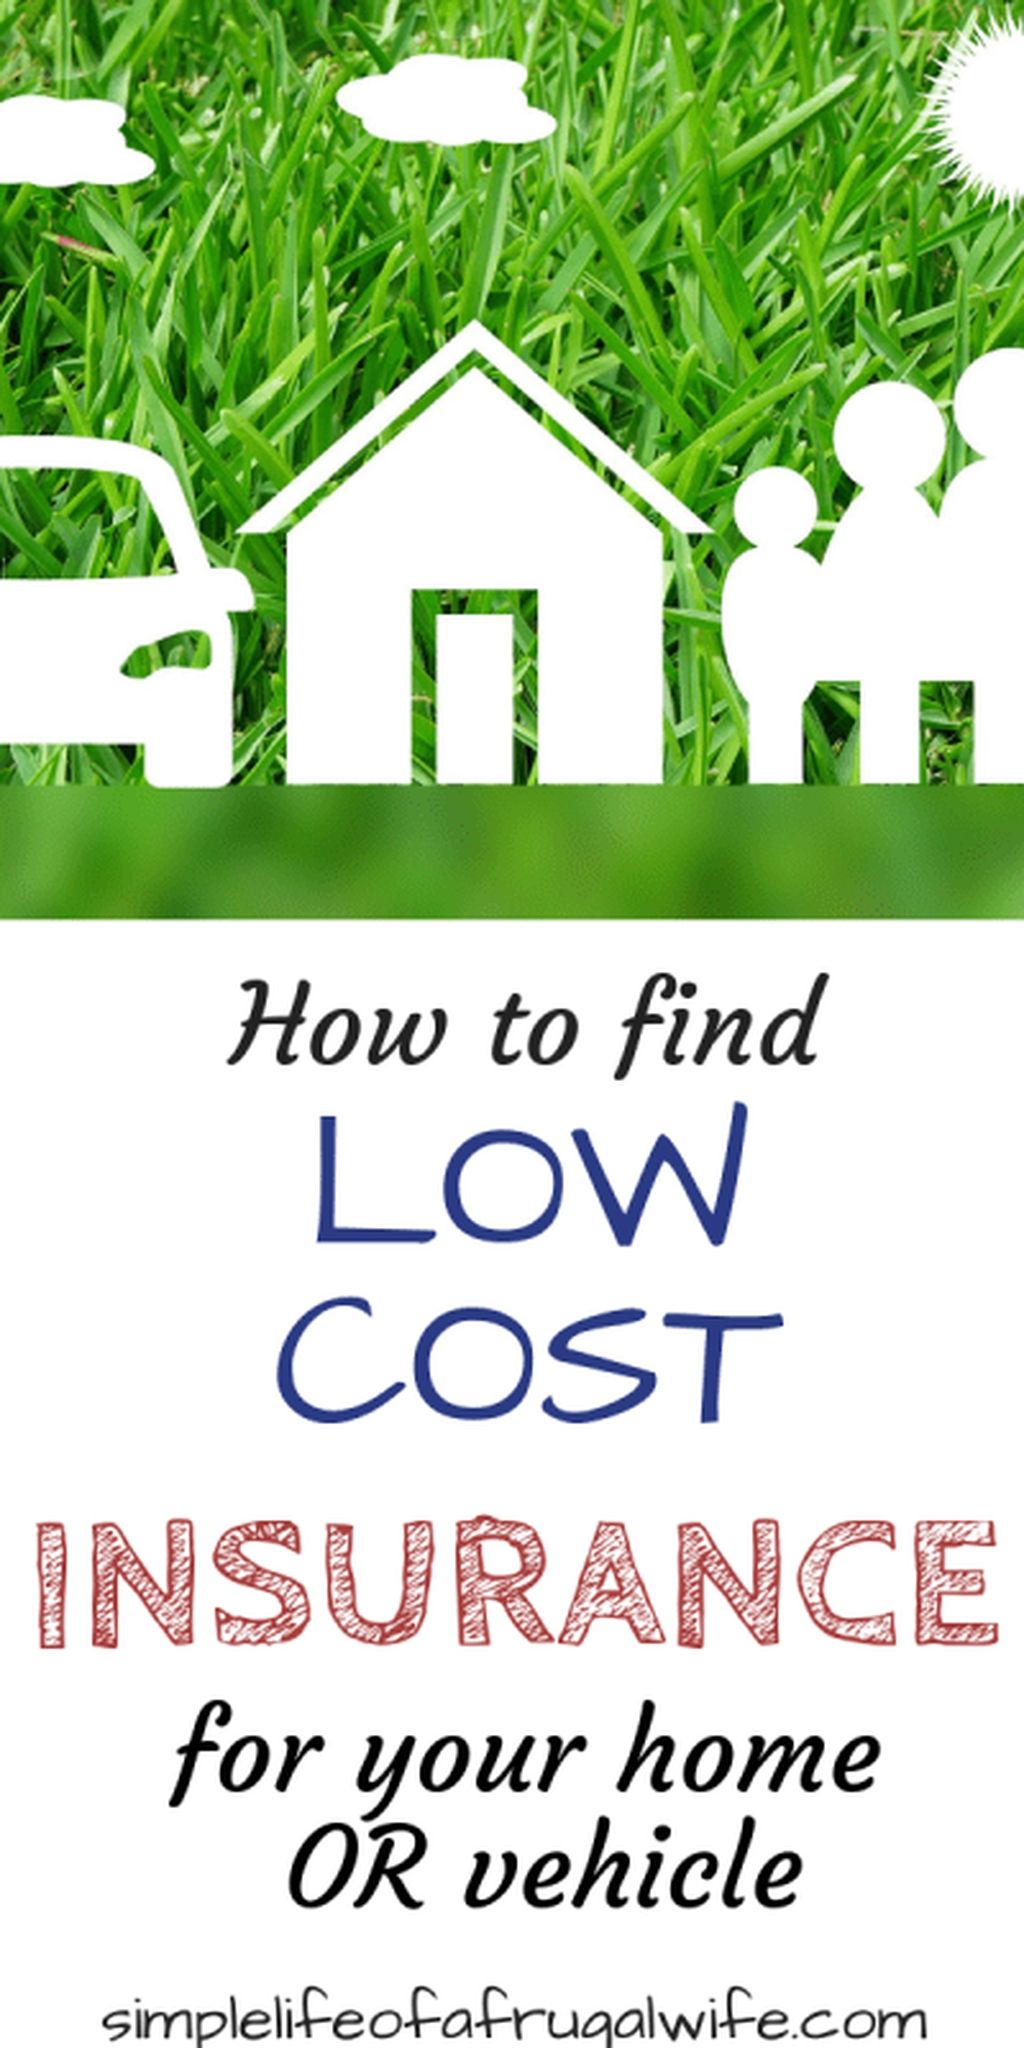 renters insurance ct cost